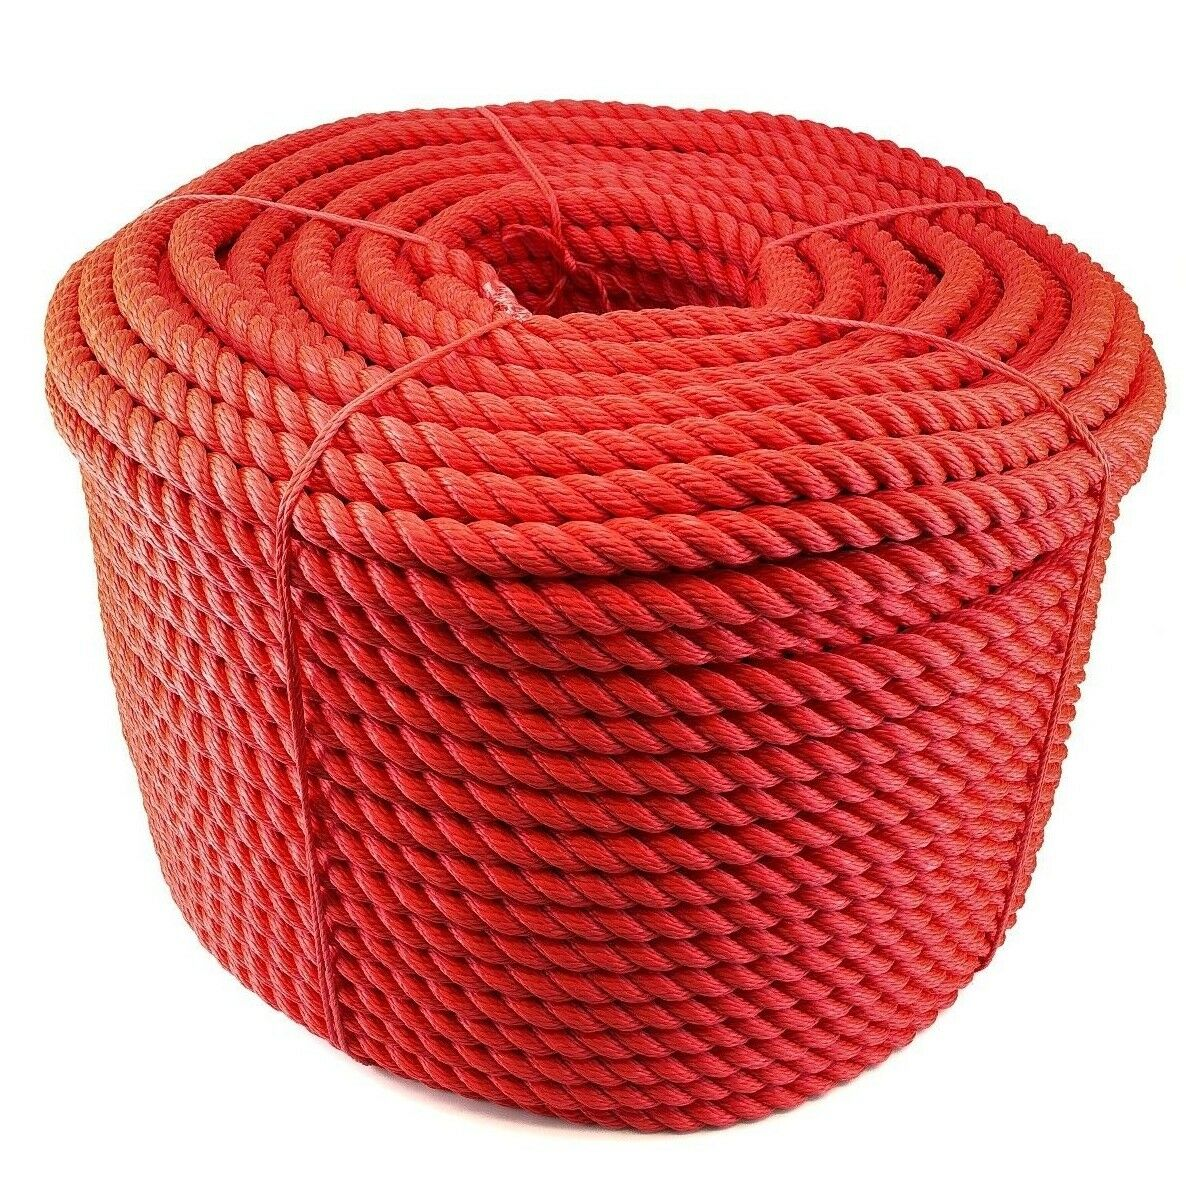 14mm Red Softline Rope x 220 Metres, Yachts, Sailing, Boats, Marine, Moorings